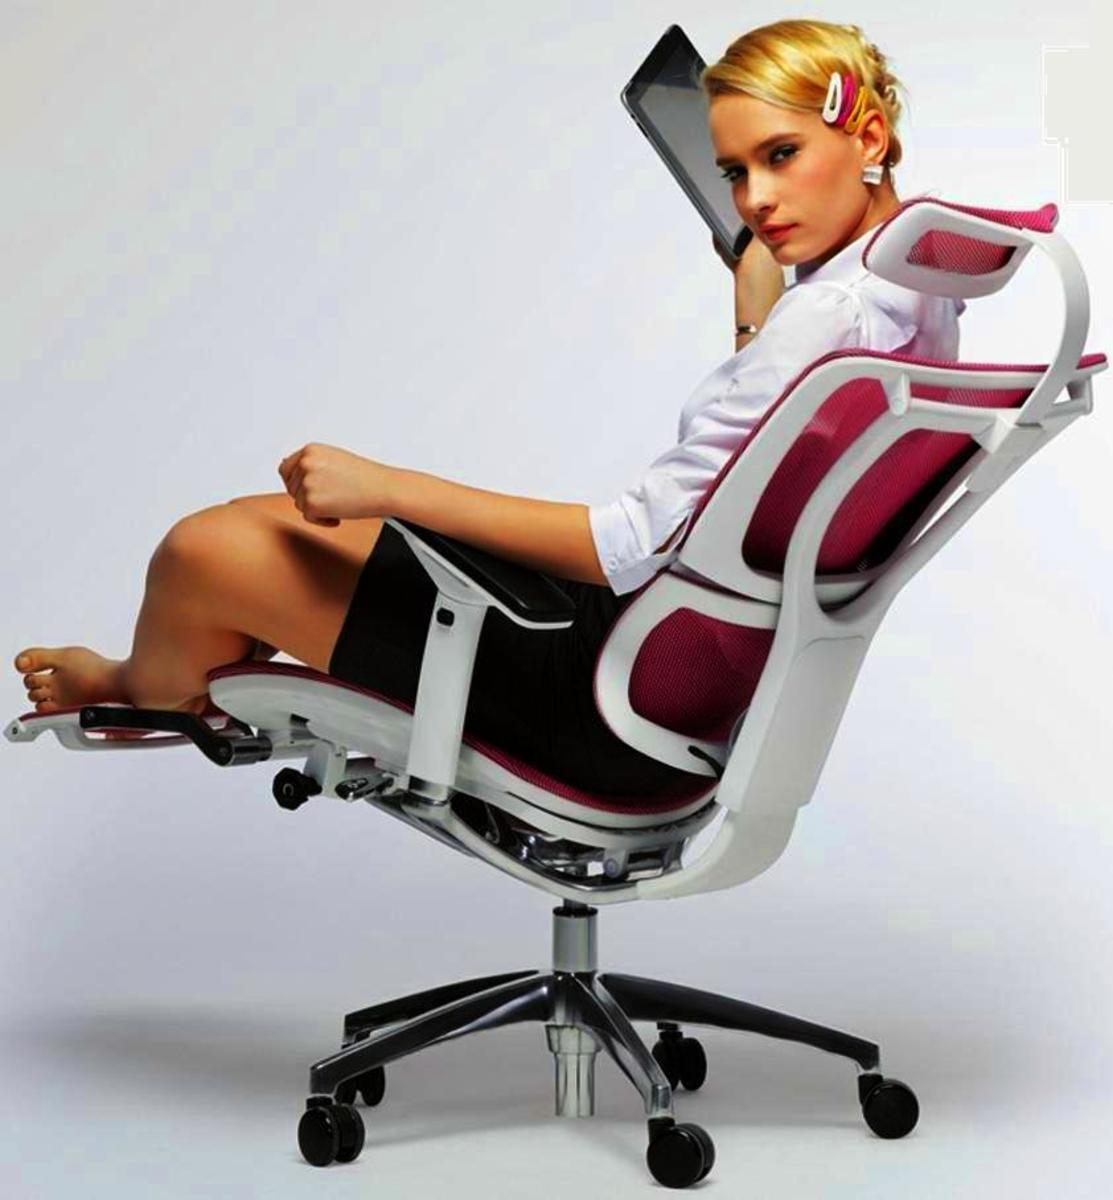 Best Desk Chair For Lower Back Pain Best Ergonomic Office Chairs 2015 Hubpages